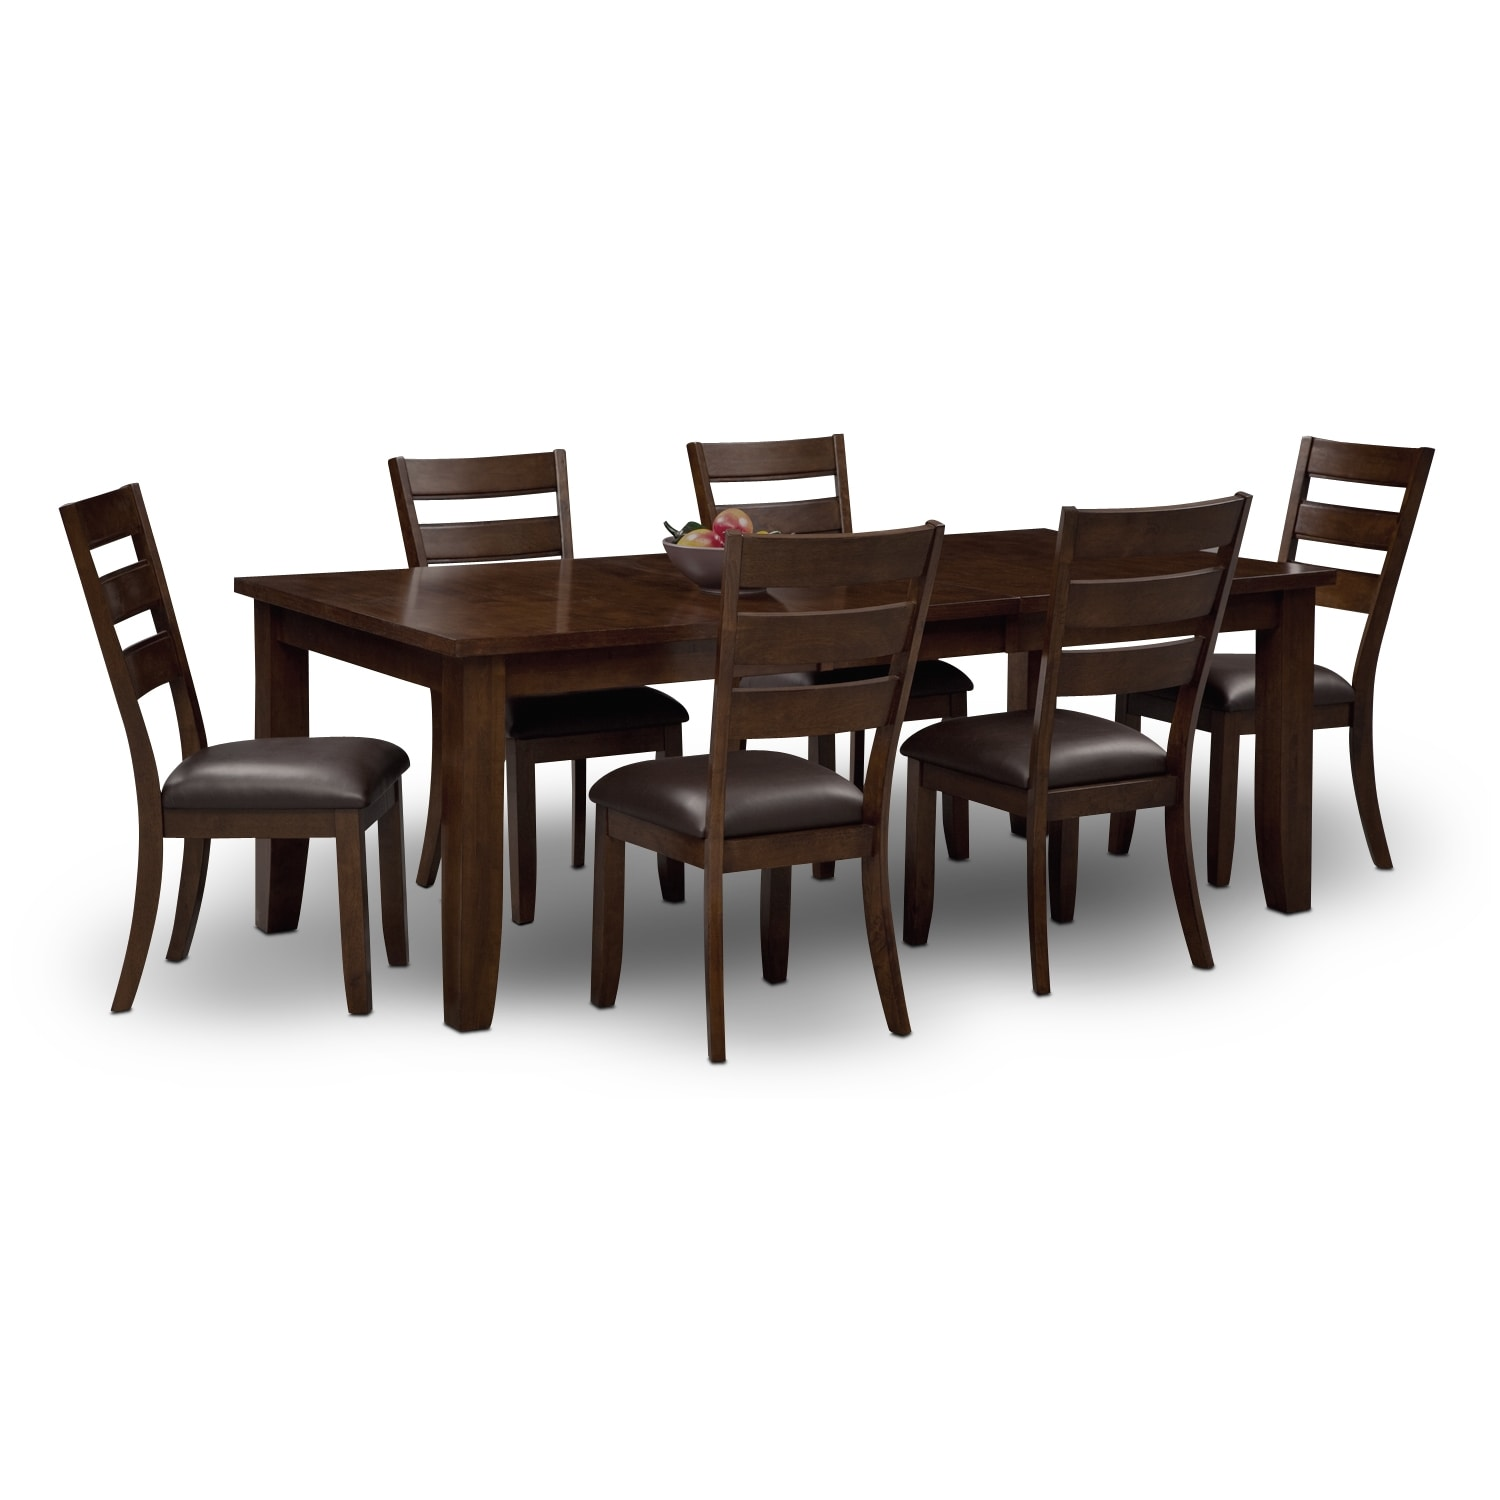 Superieur Abaco Table And 6 Chairs   Brown